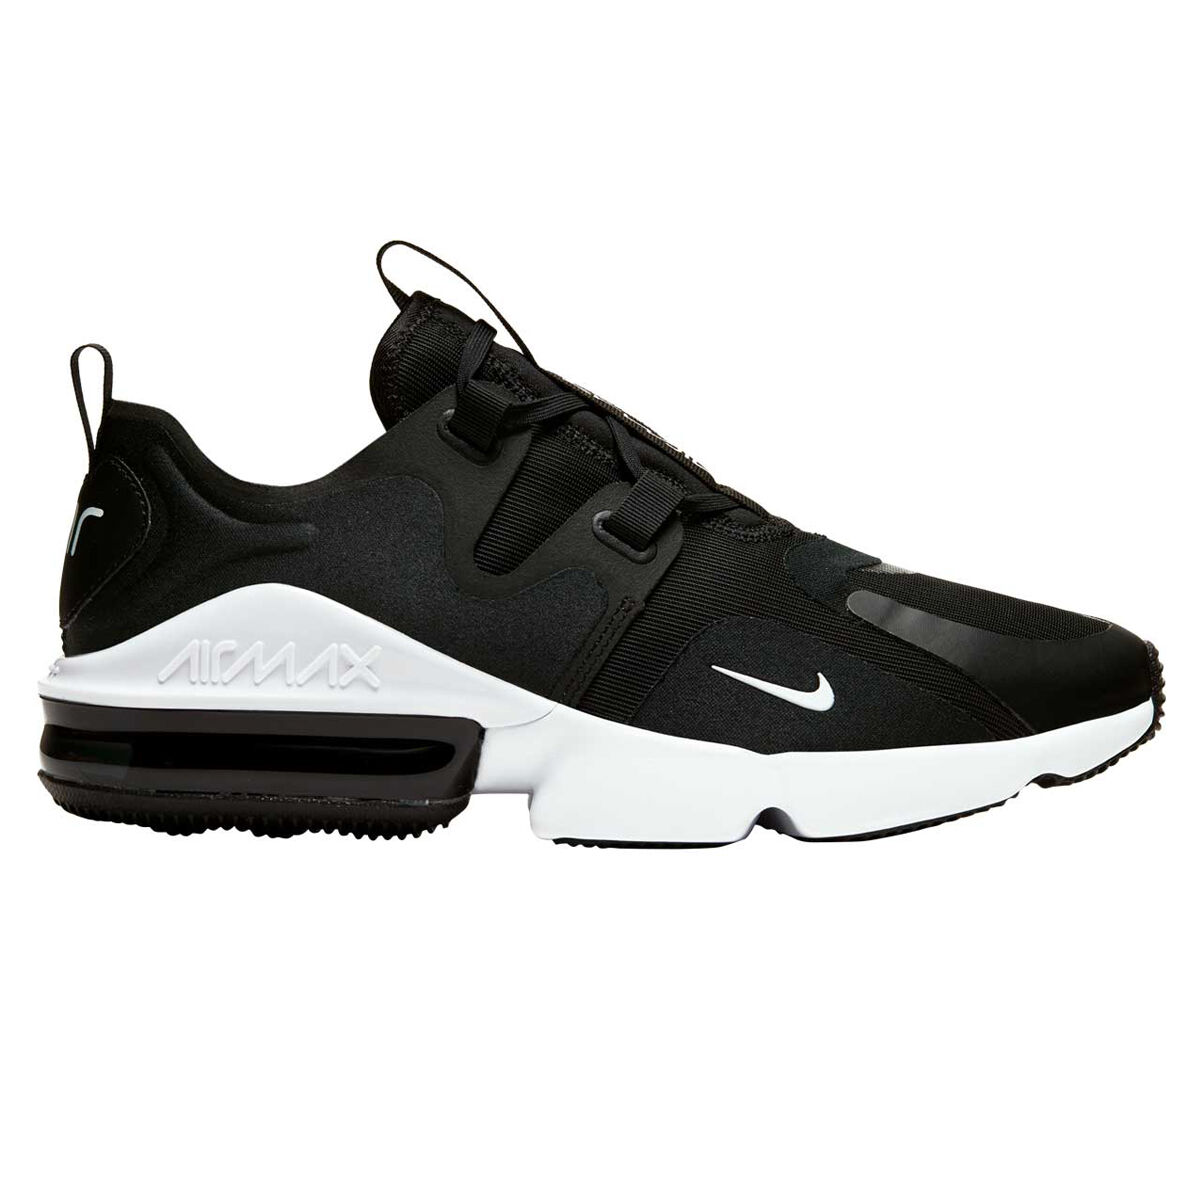 Nike Air Max Infinity Mens Casual Shoes | Beitjalapharma Sport